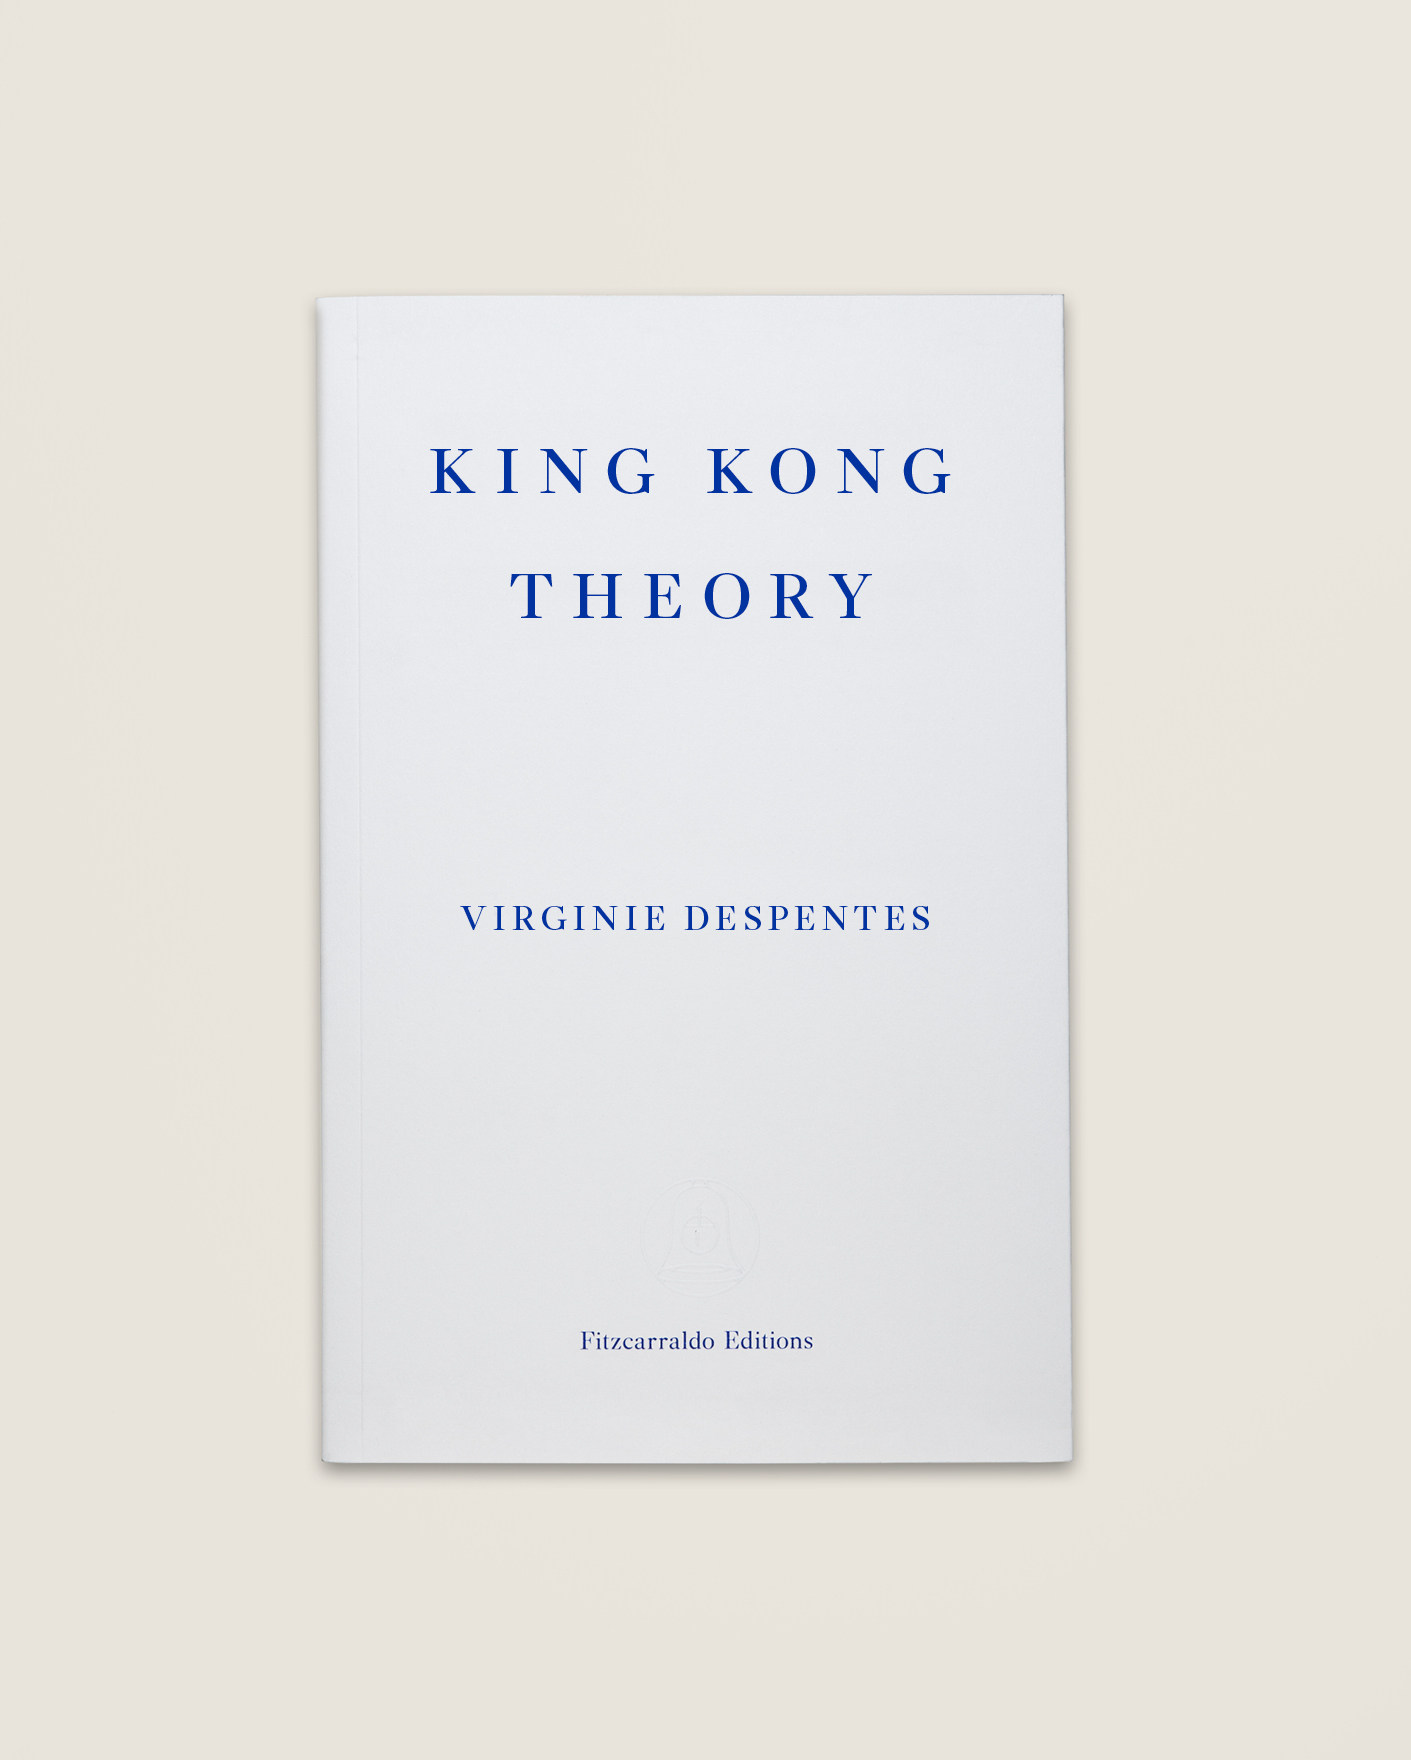 King Kong Theory Virginie Despentes 10 99